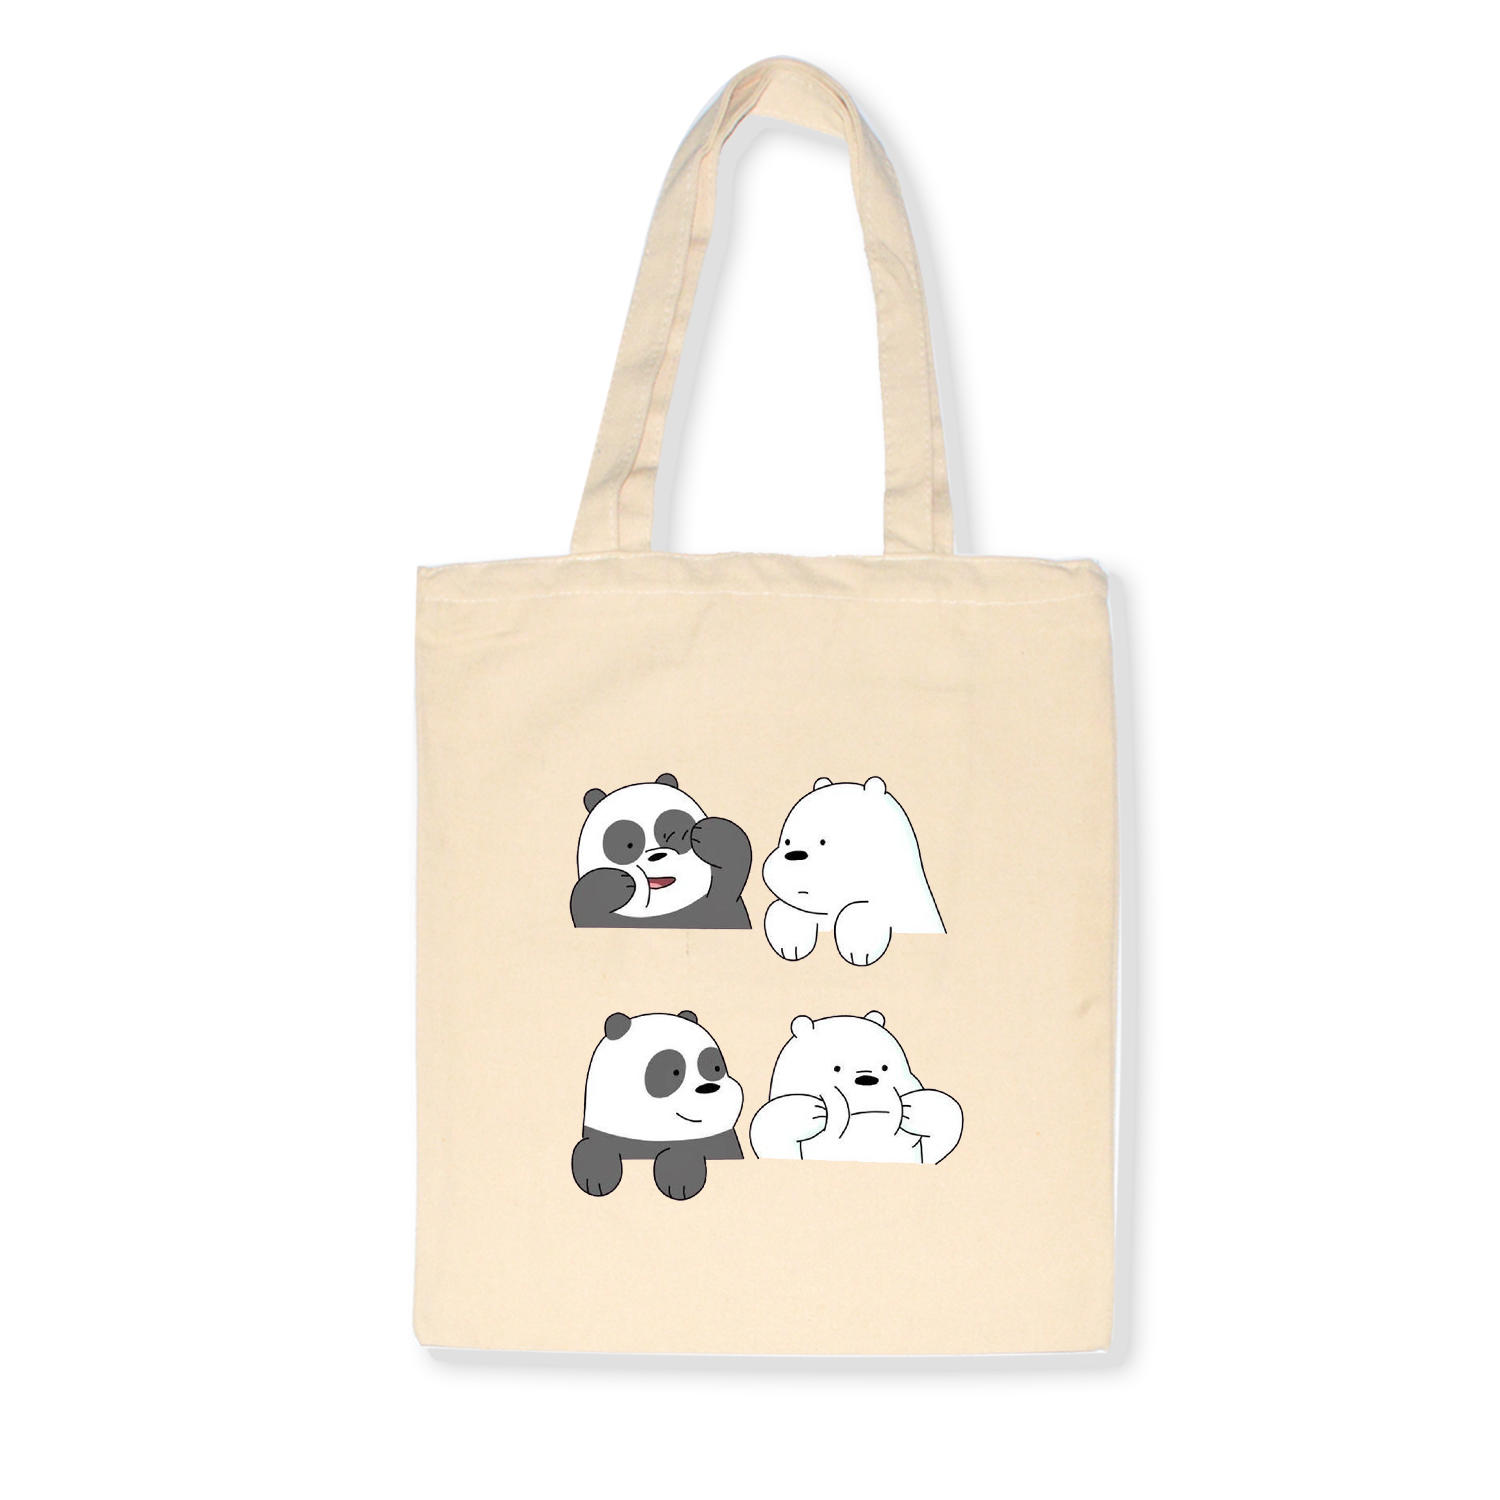 Cute Tote Bag Animals Three Bears Print Canvas Bag Eco Shopping Bag Daily Use Foldable Handbag Large Capacity Canvas Tote Women